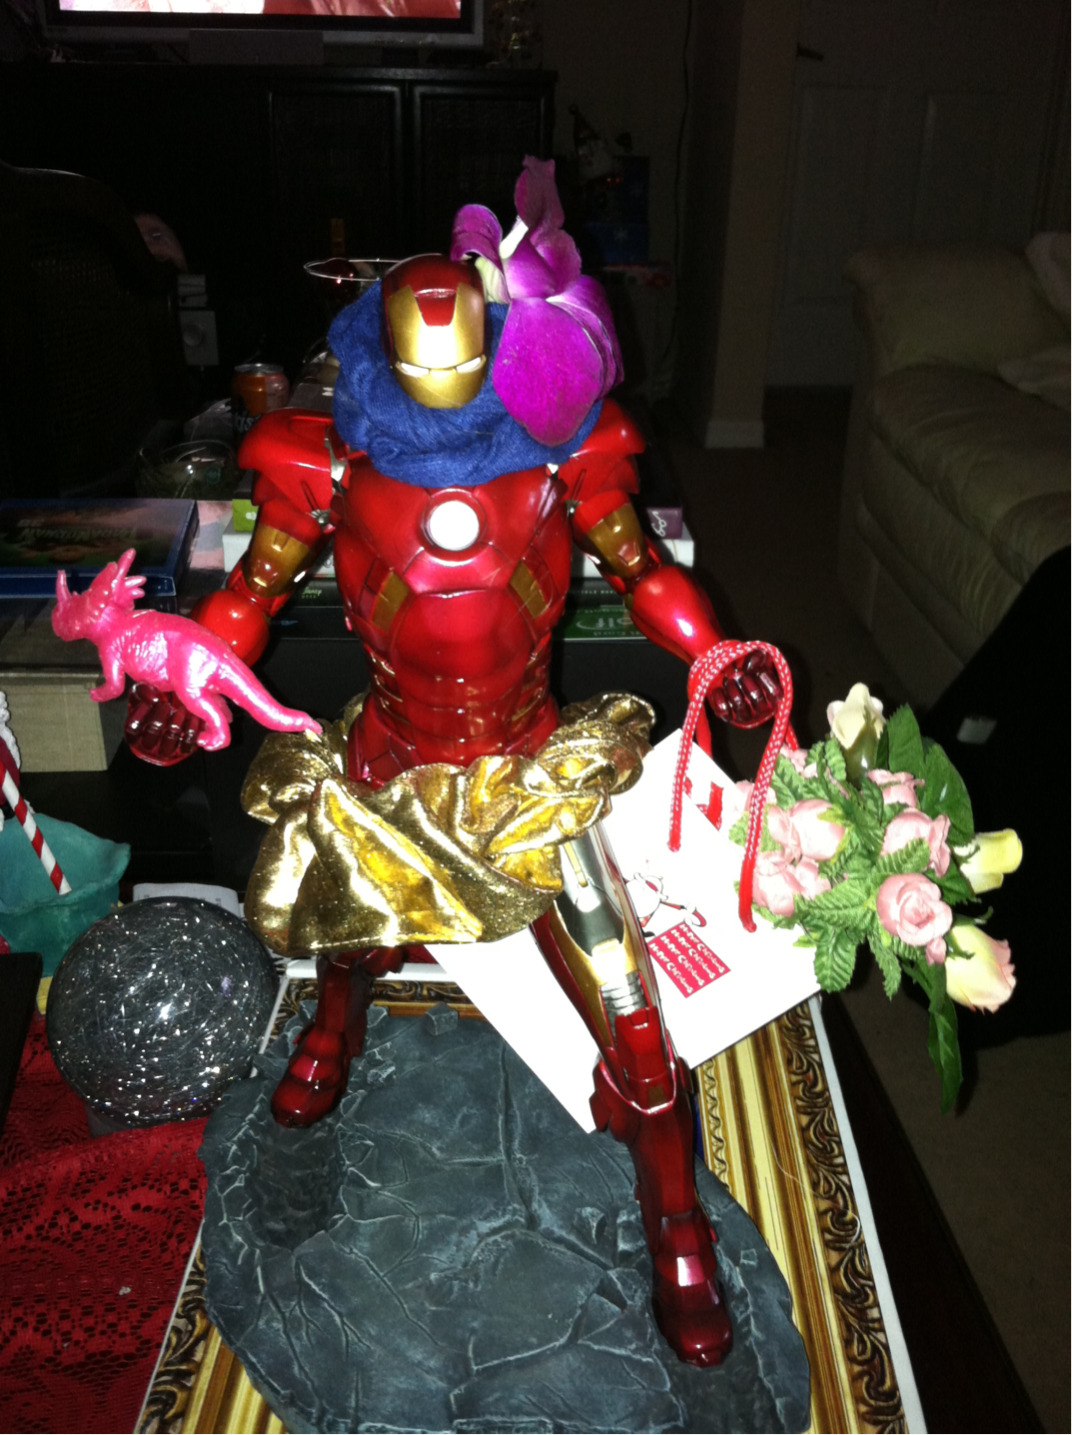 IronMan returns from his shopping spree.